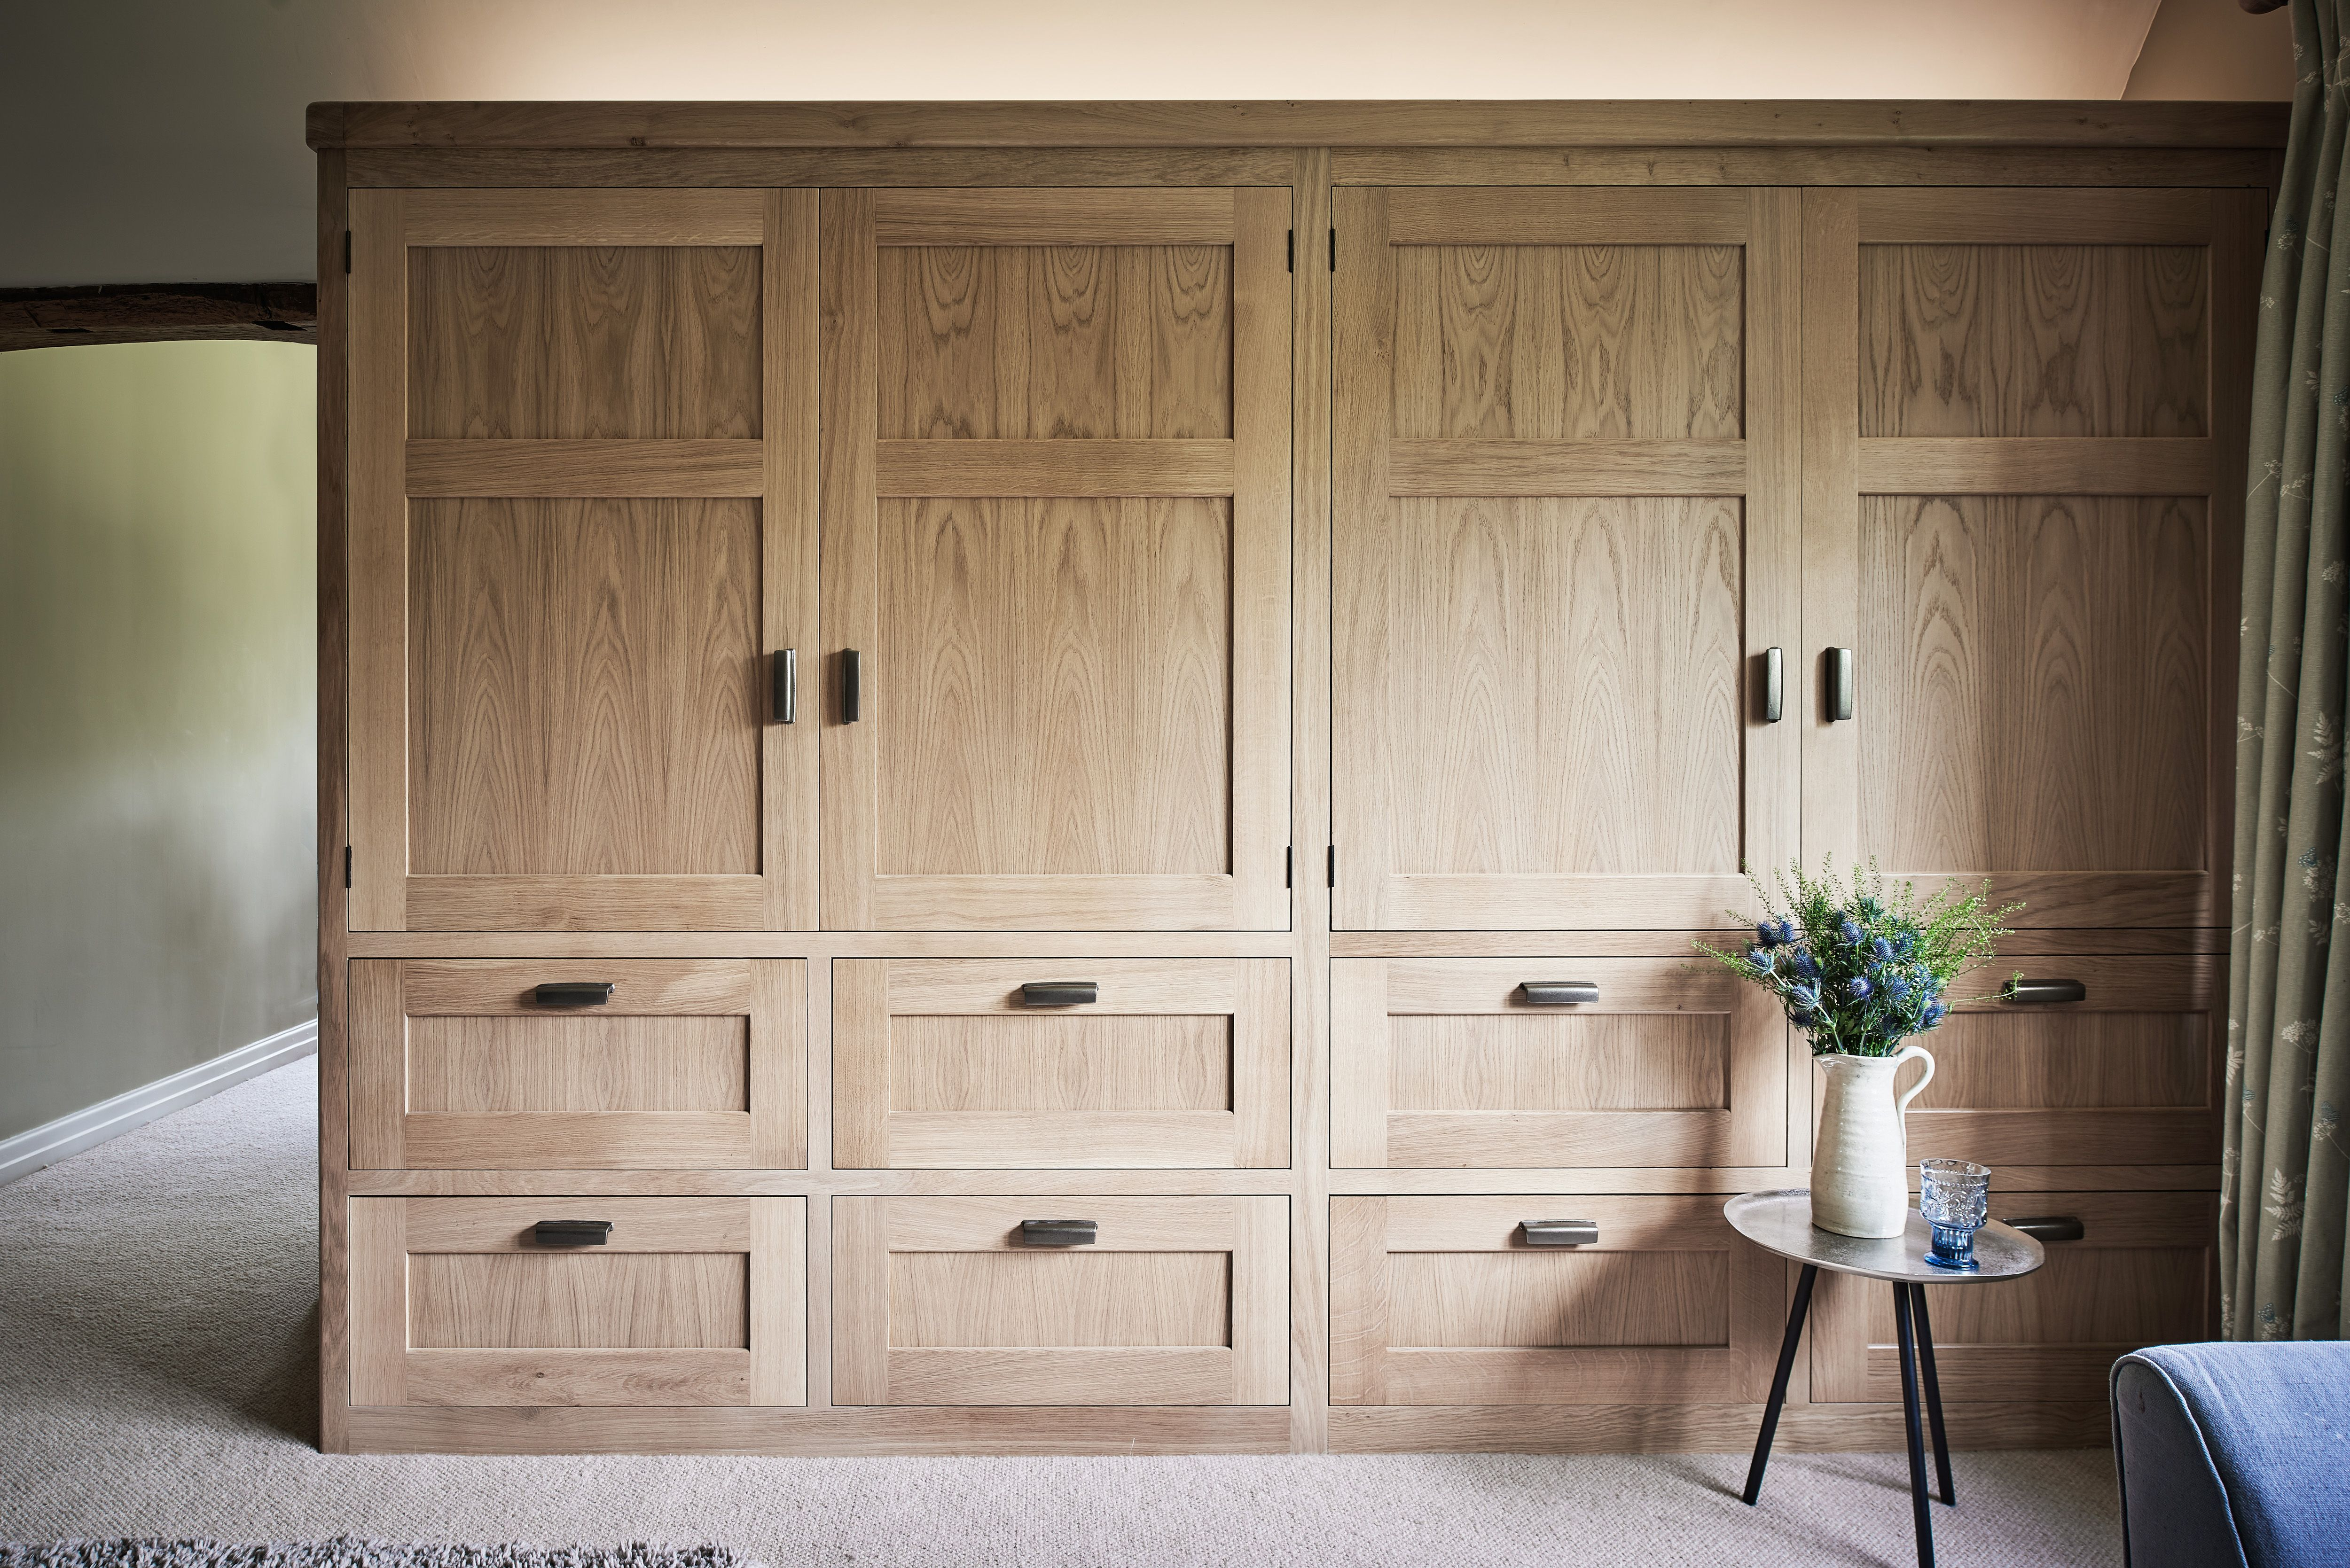 Bespoke Bedroom Furniture Bedroom Design Dressing Room Oak Wardrobes Bespoke Wardrobes Surrey Sussex Hamp Bespoke Kitchens Property Renovation Snug Room